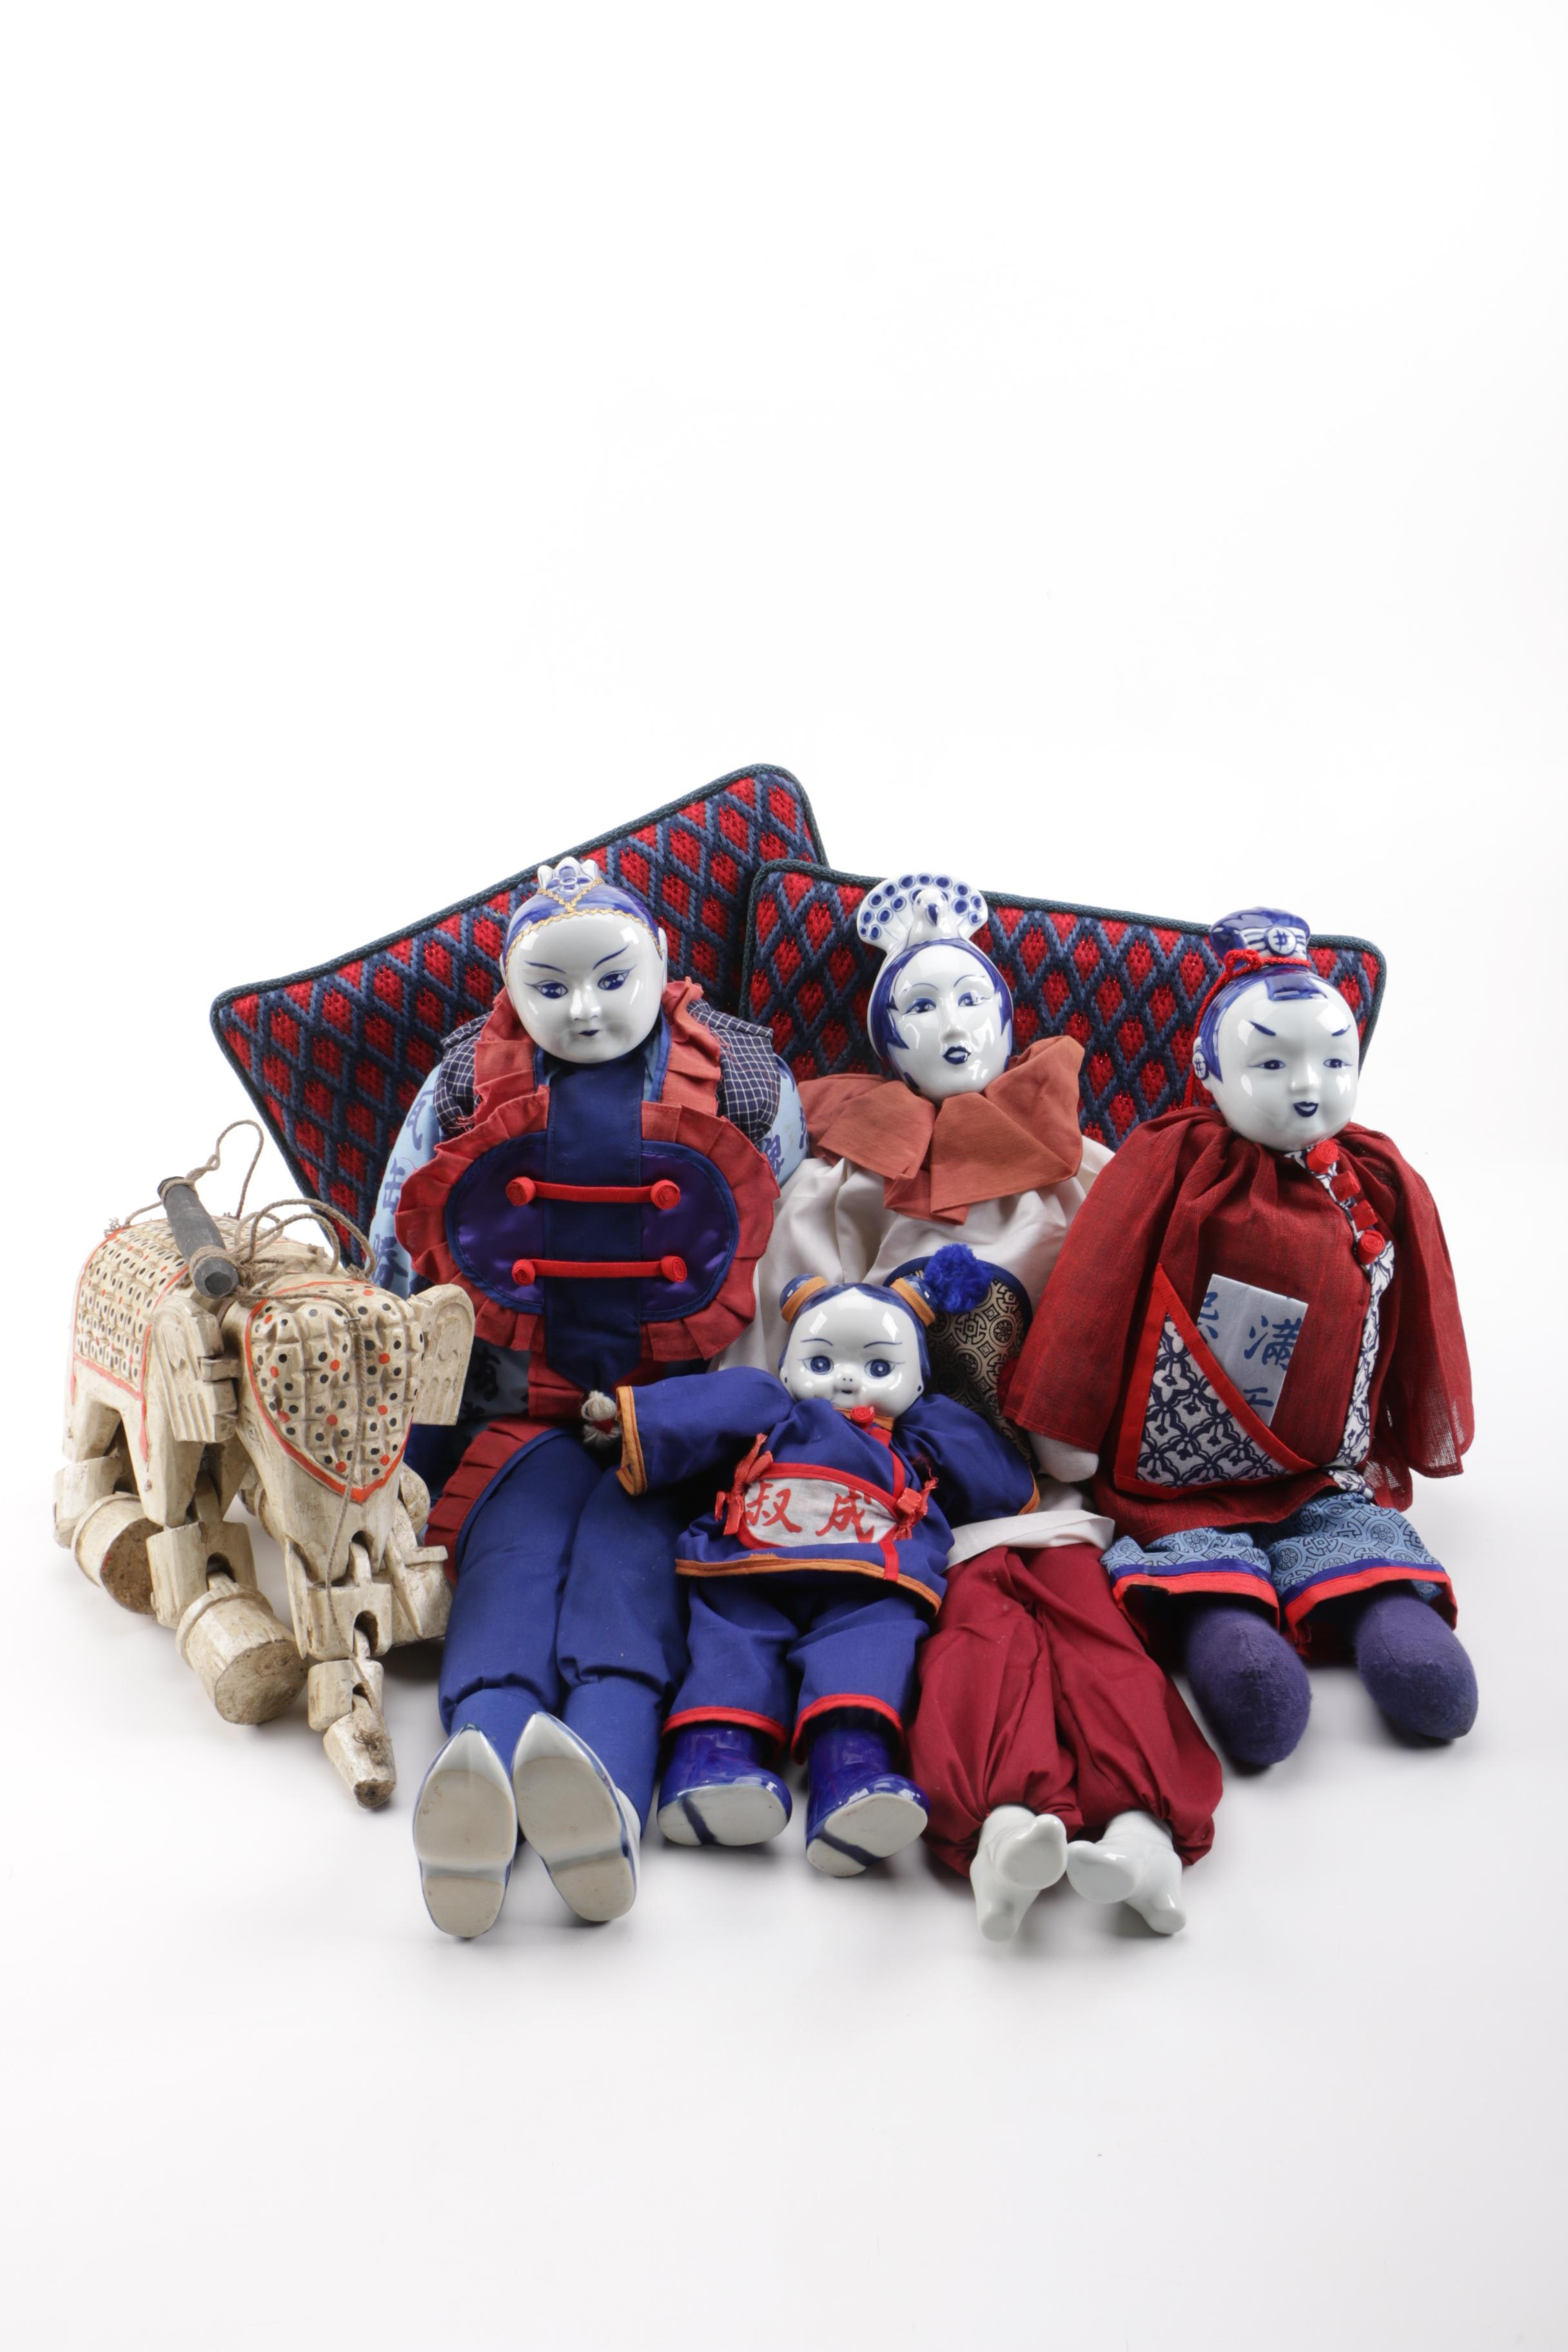 Collection of Chinese Dolls and Vintage Elephant Marionette